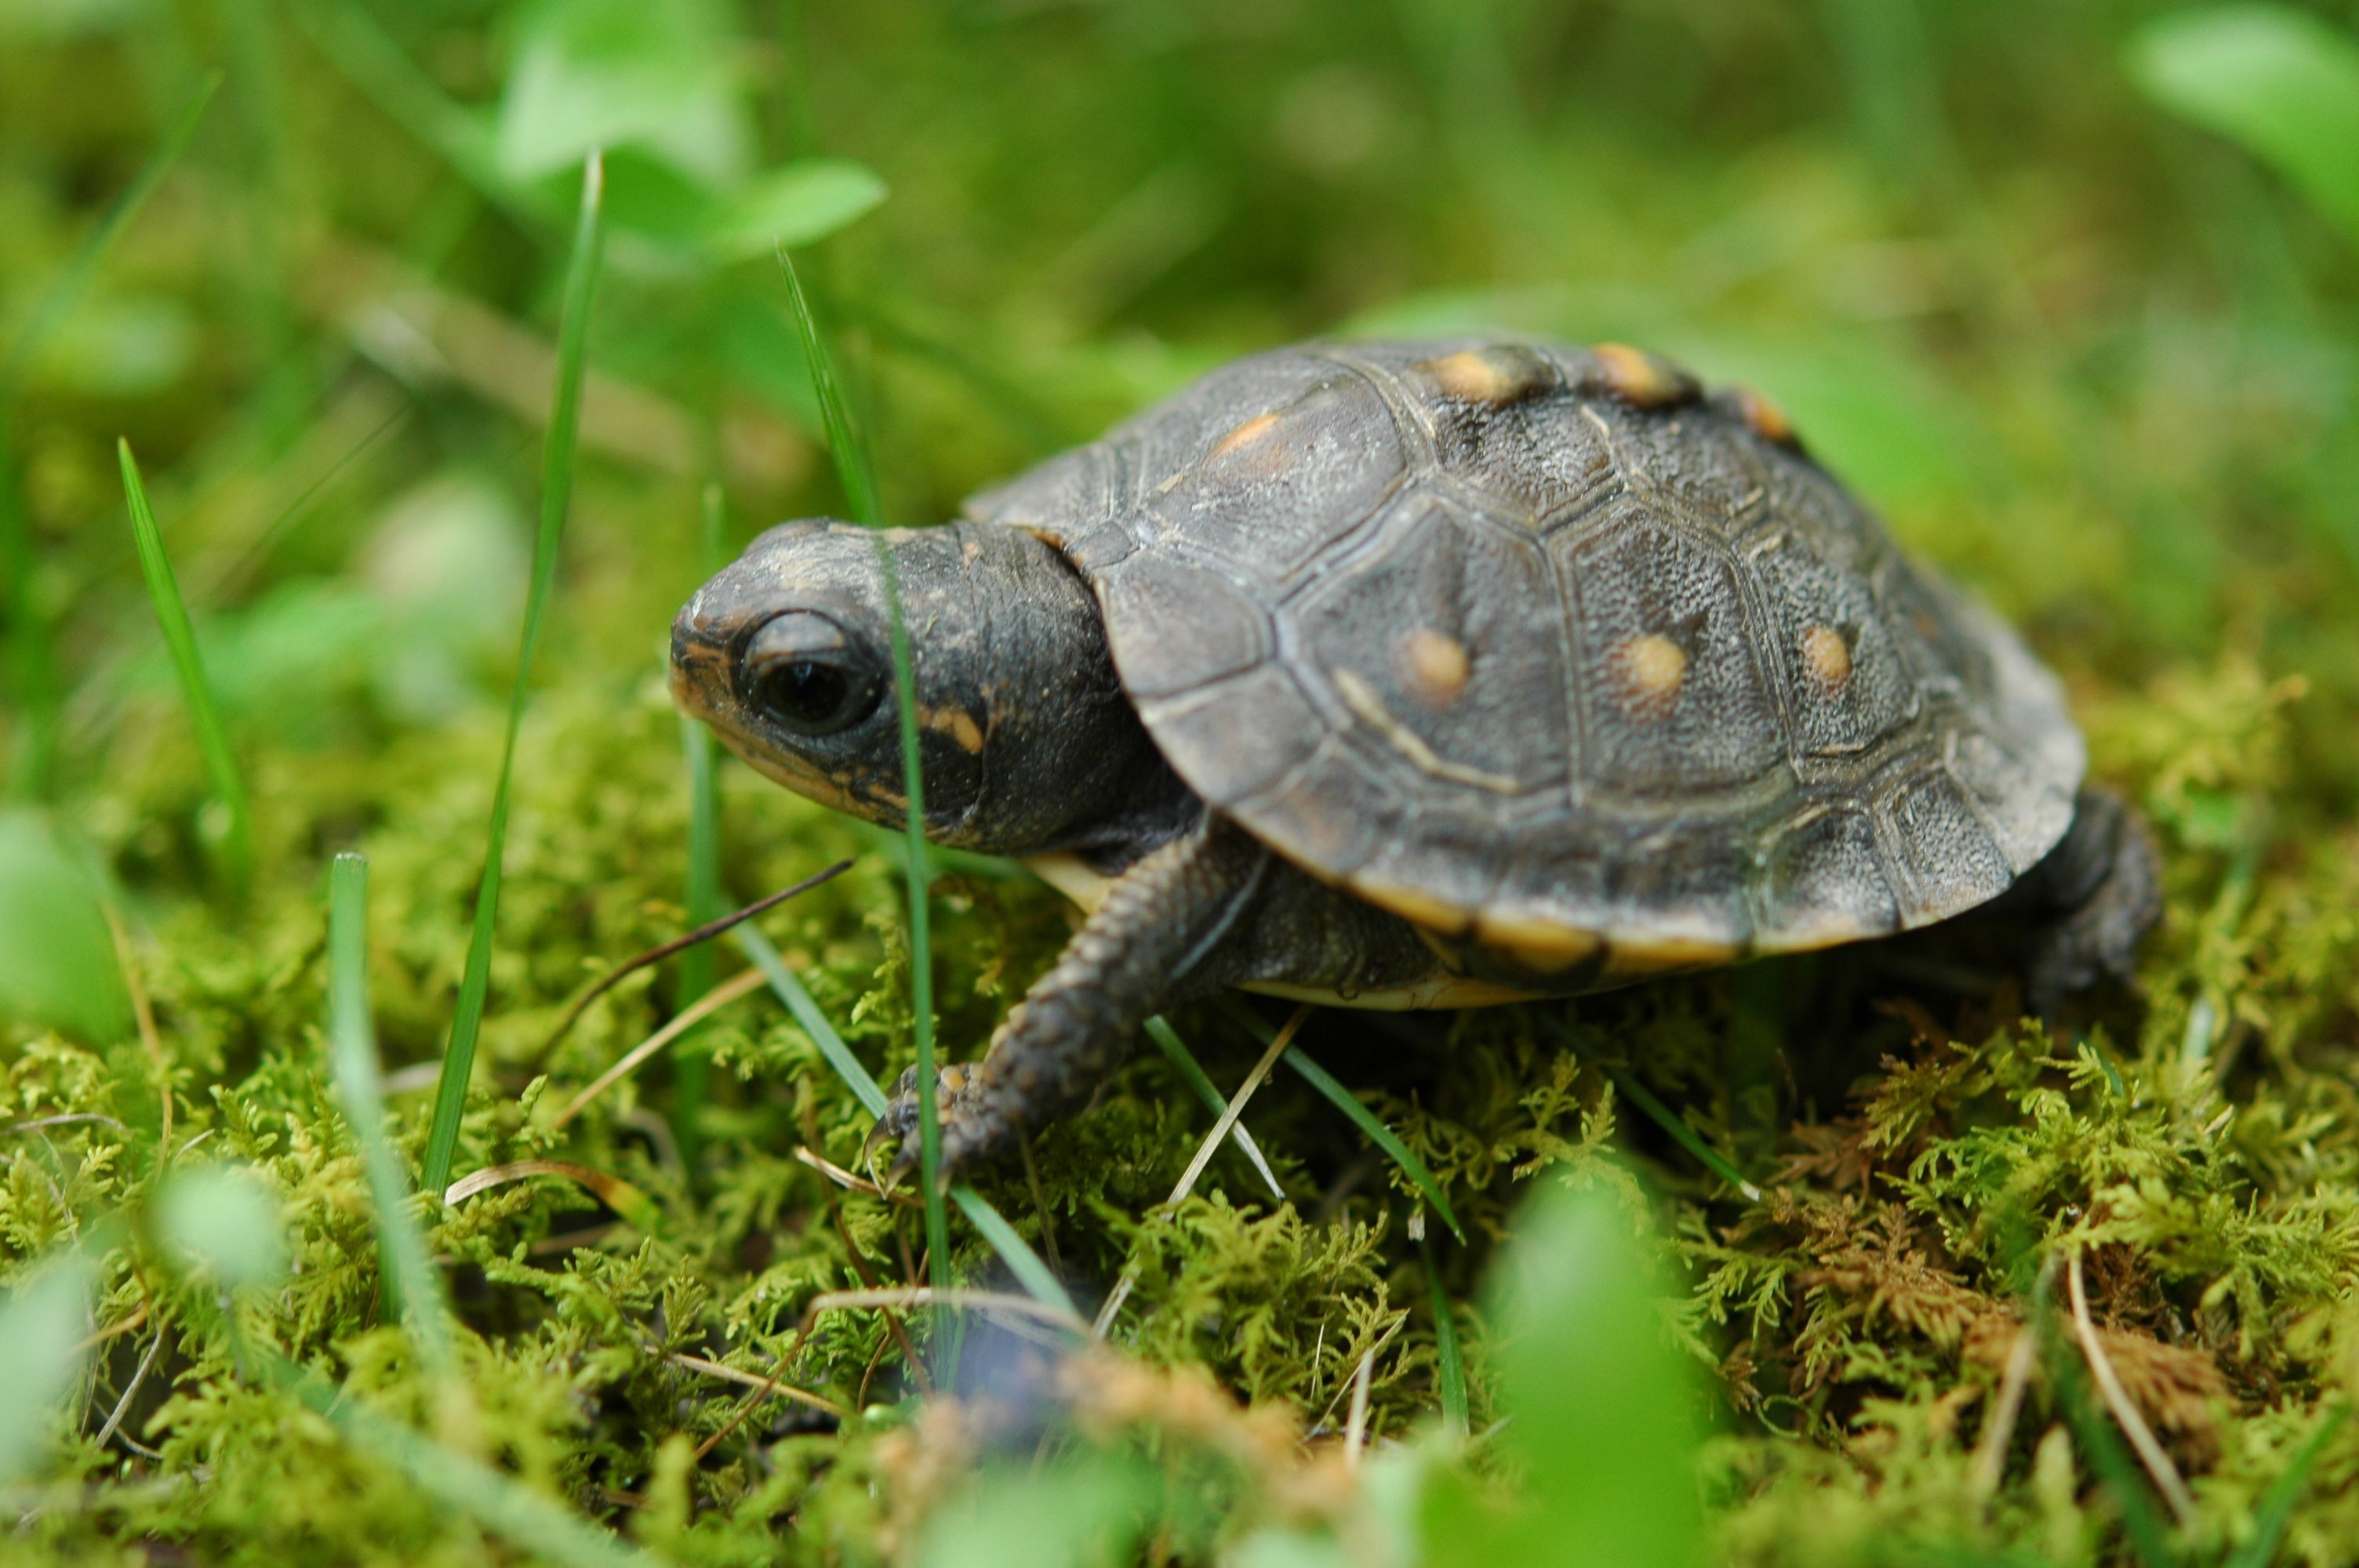 This is the Reason Your Turtle Tank Gets Cloudy - TurtleHolic